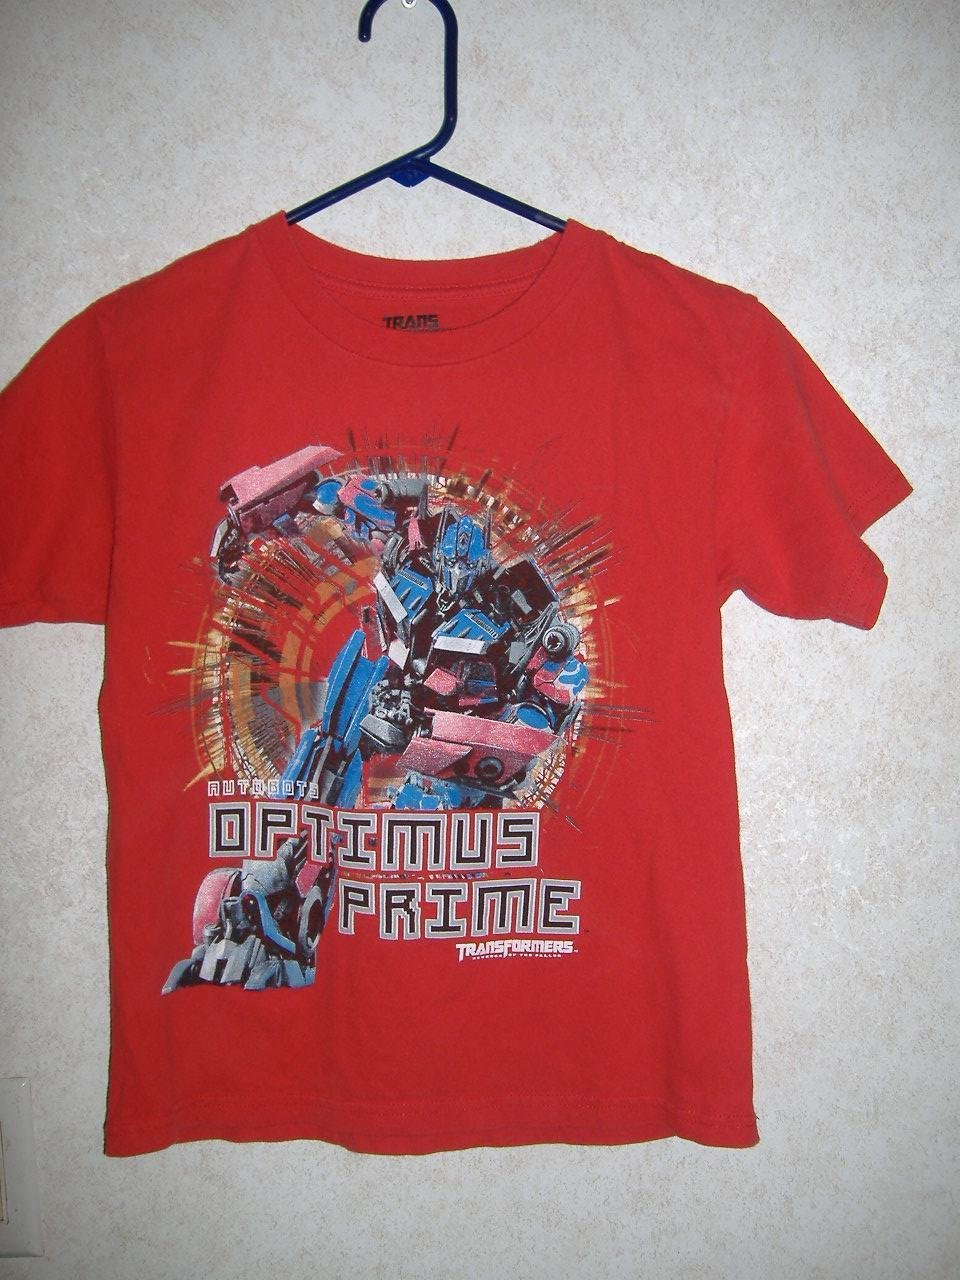 Trans Formers T-Shirt   Size10 / 12